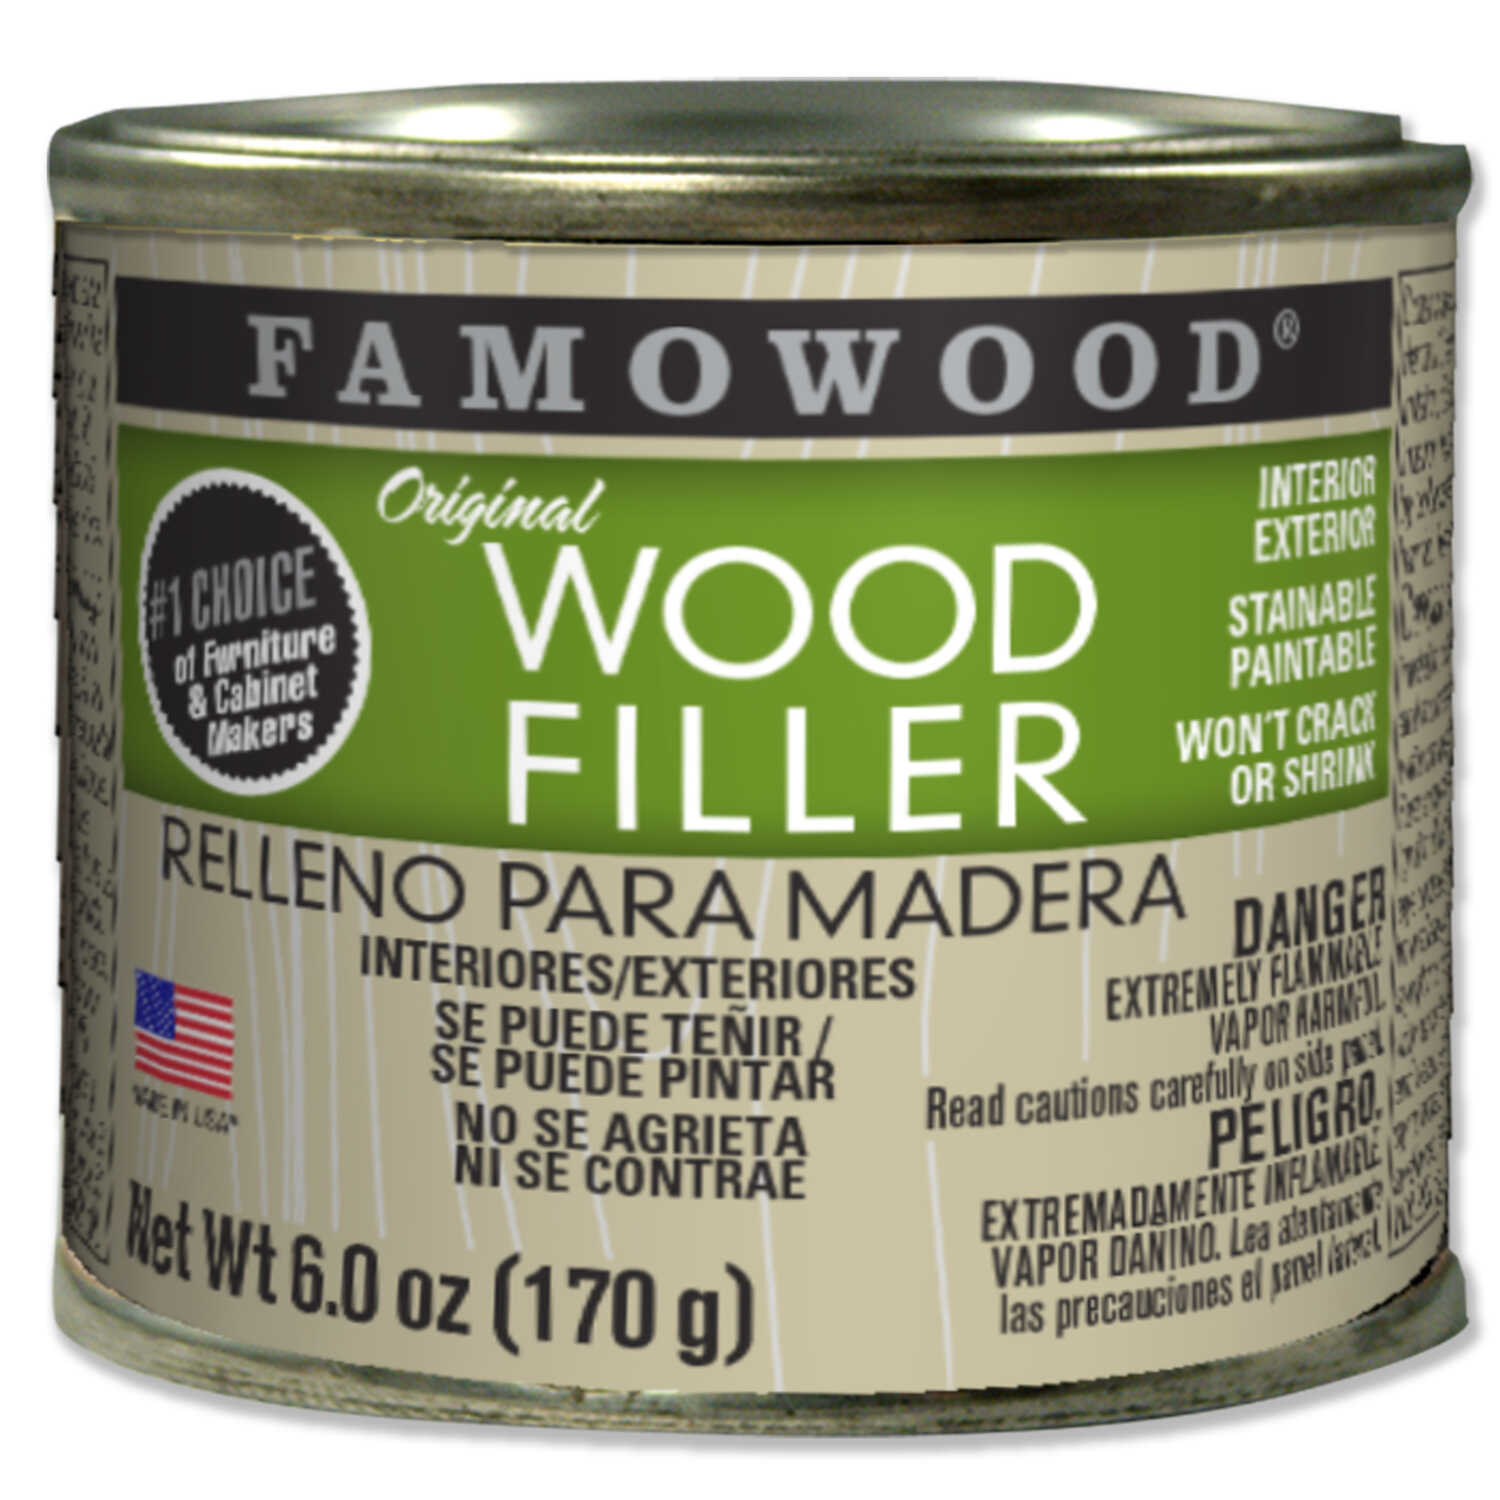 Famowood  White Pine  Wood Filler  6 oz.